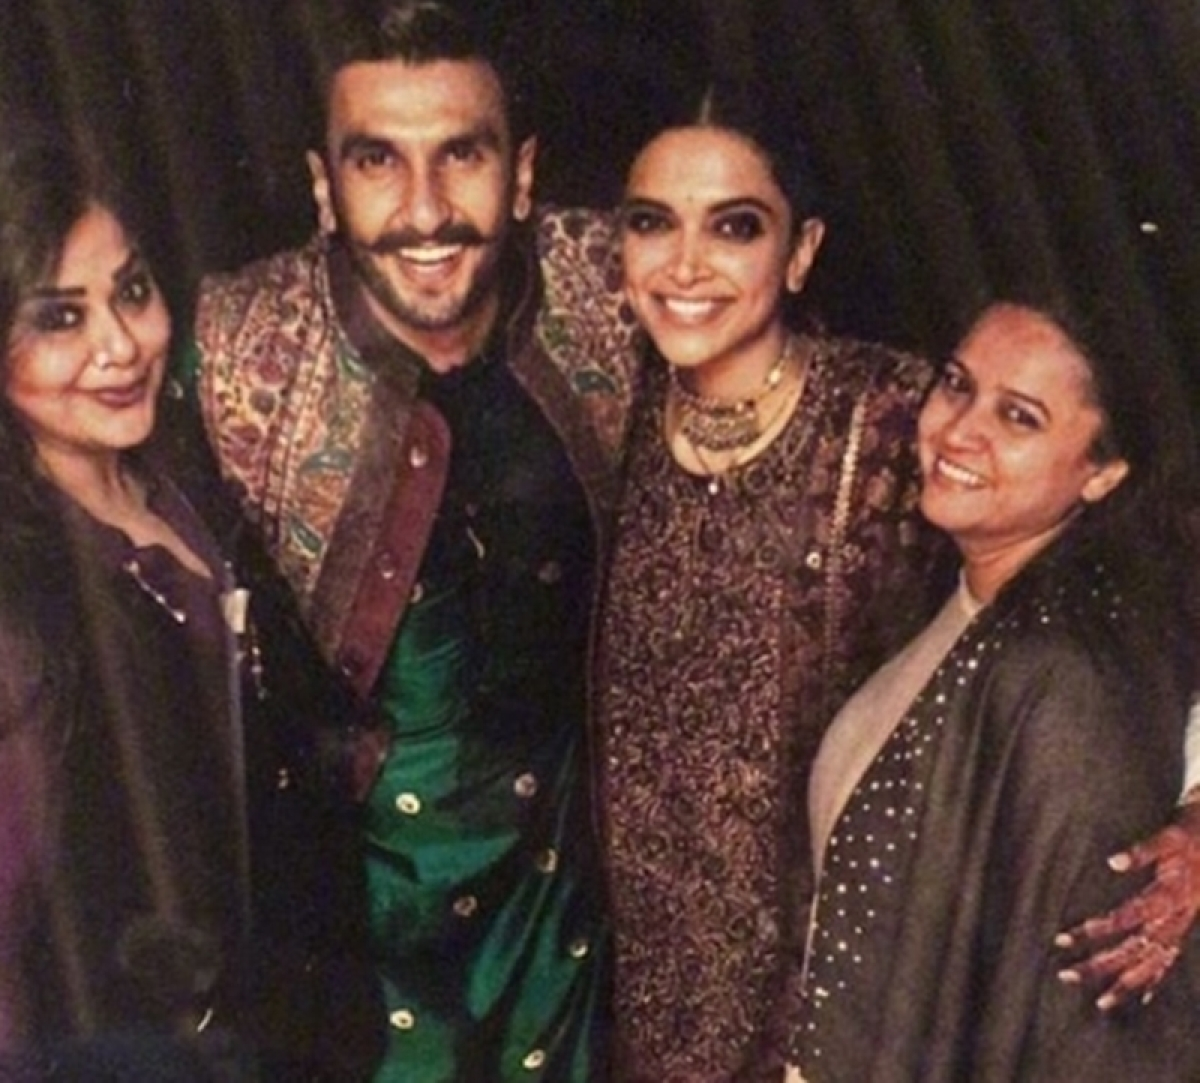 Forget Deepika, its Ranveer's groom glow in this unseen picture that makes him the happiest 'Dulha' on earth